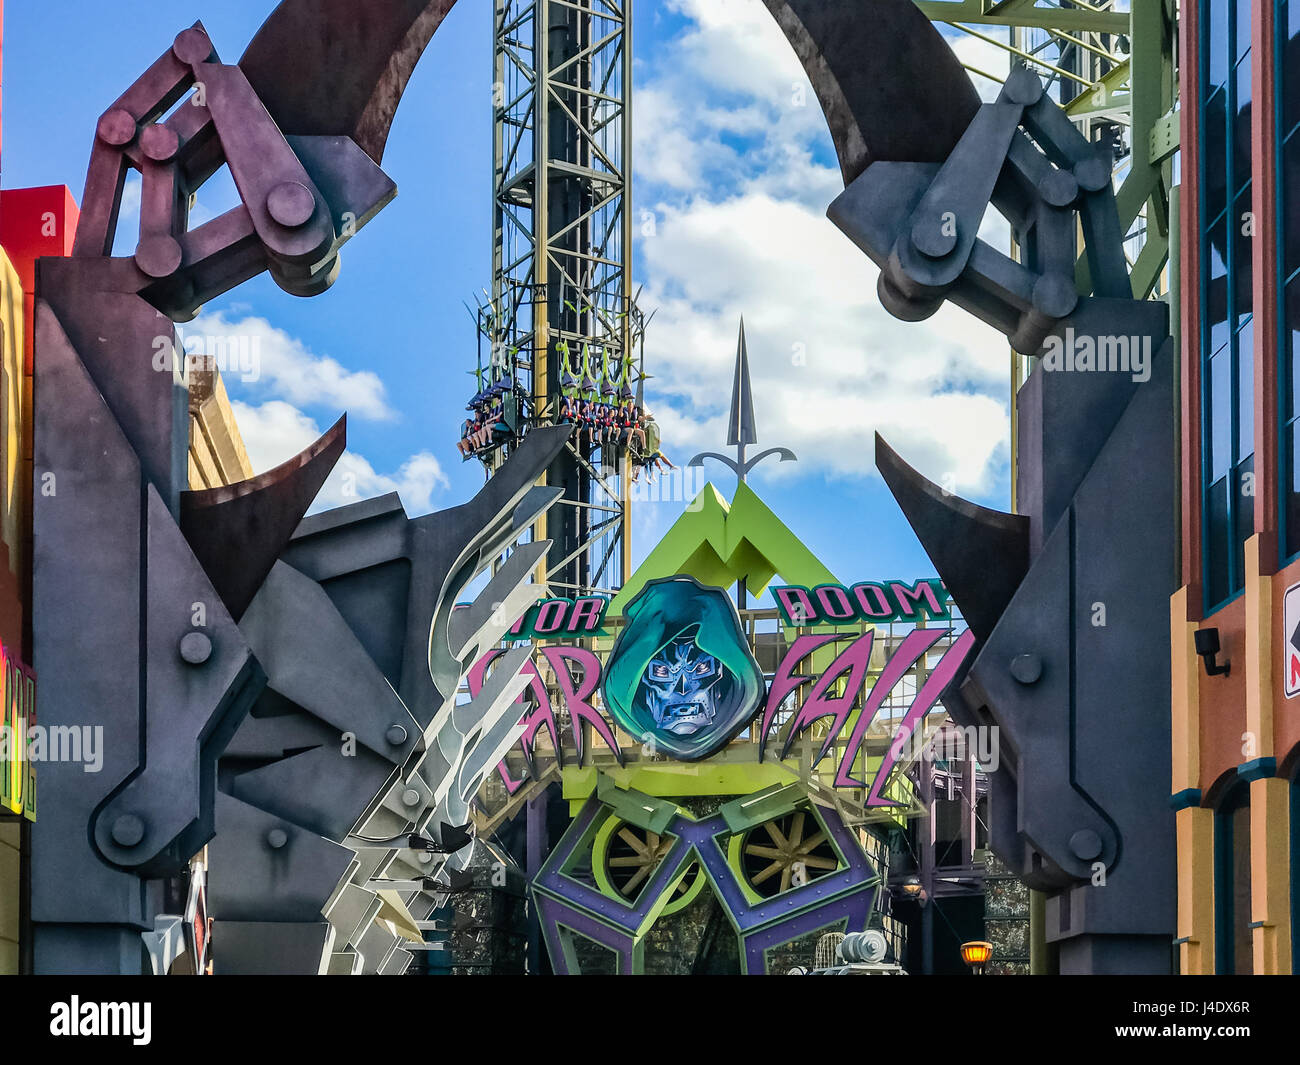 Marvel Super Hero Island, Islands of Adventure, Universal Studios Orlando is a theme park resort in Orlando, Florida. - Stock Image